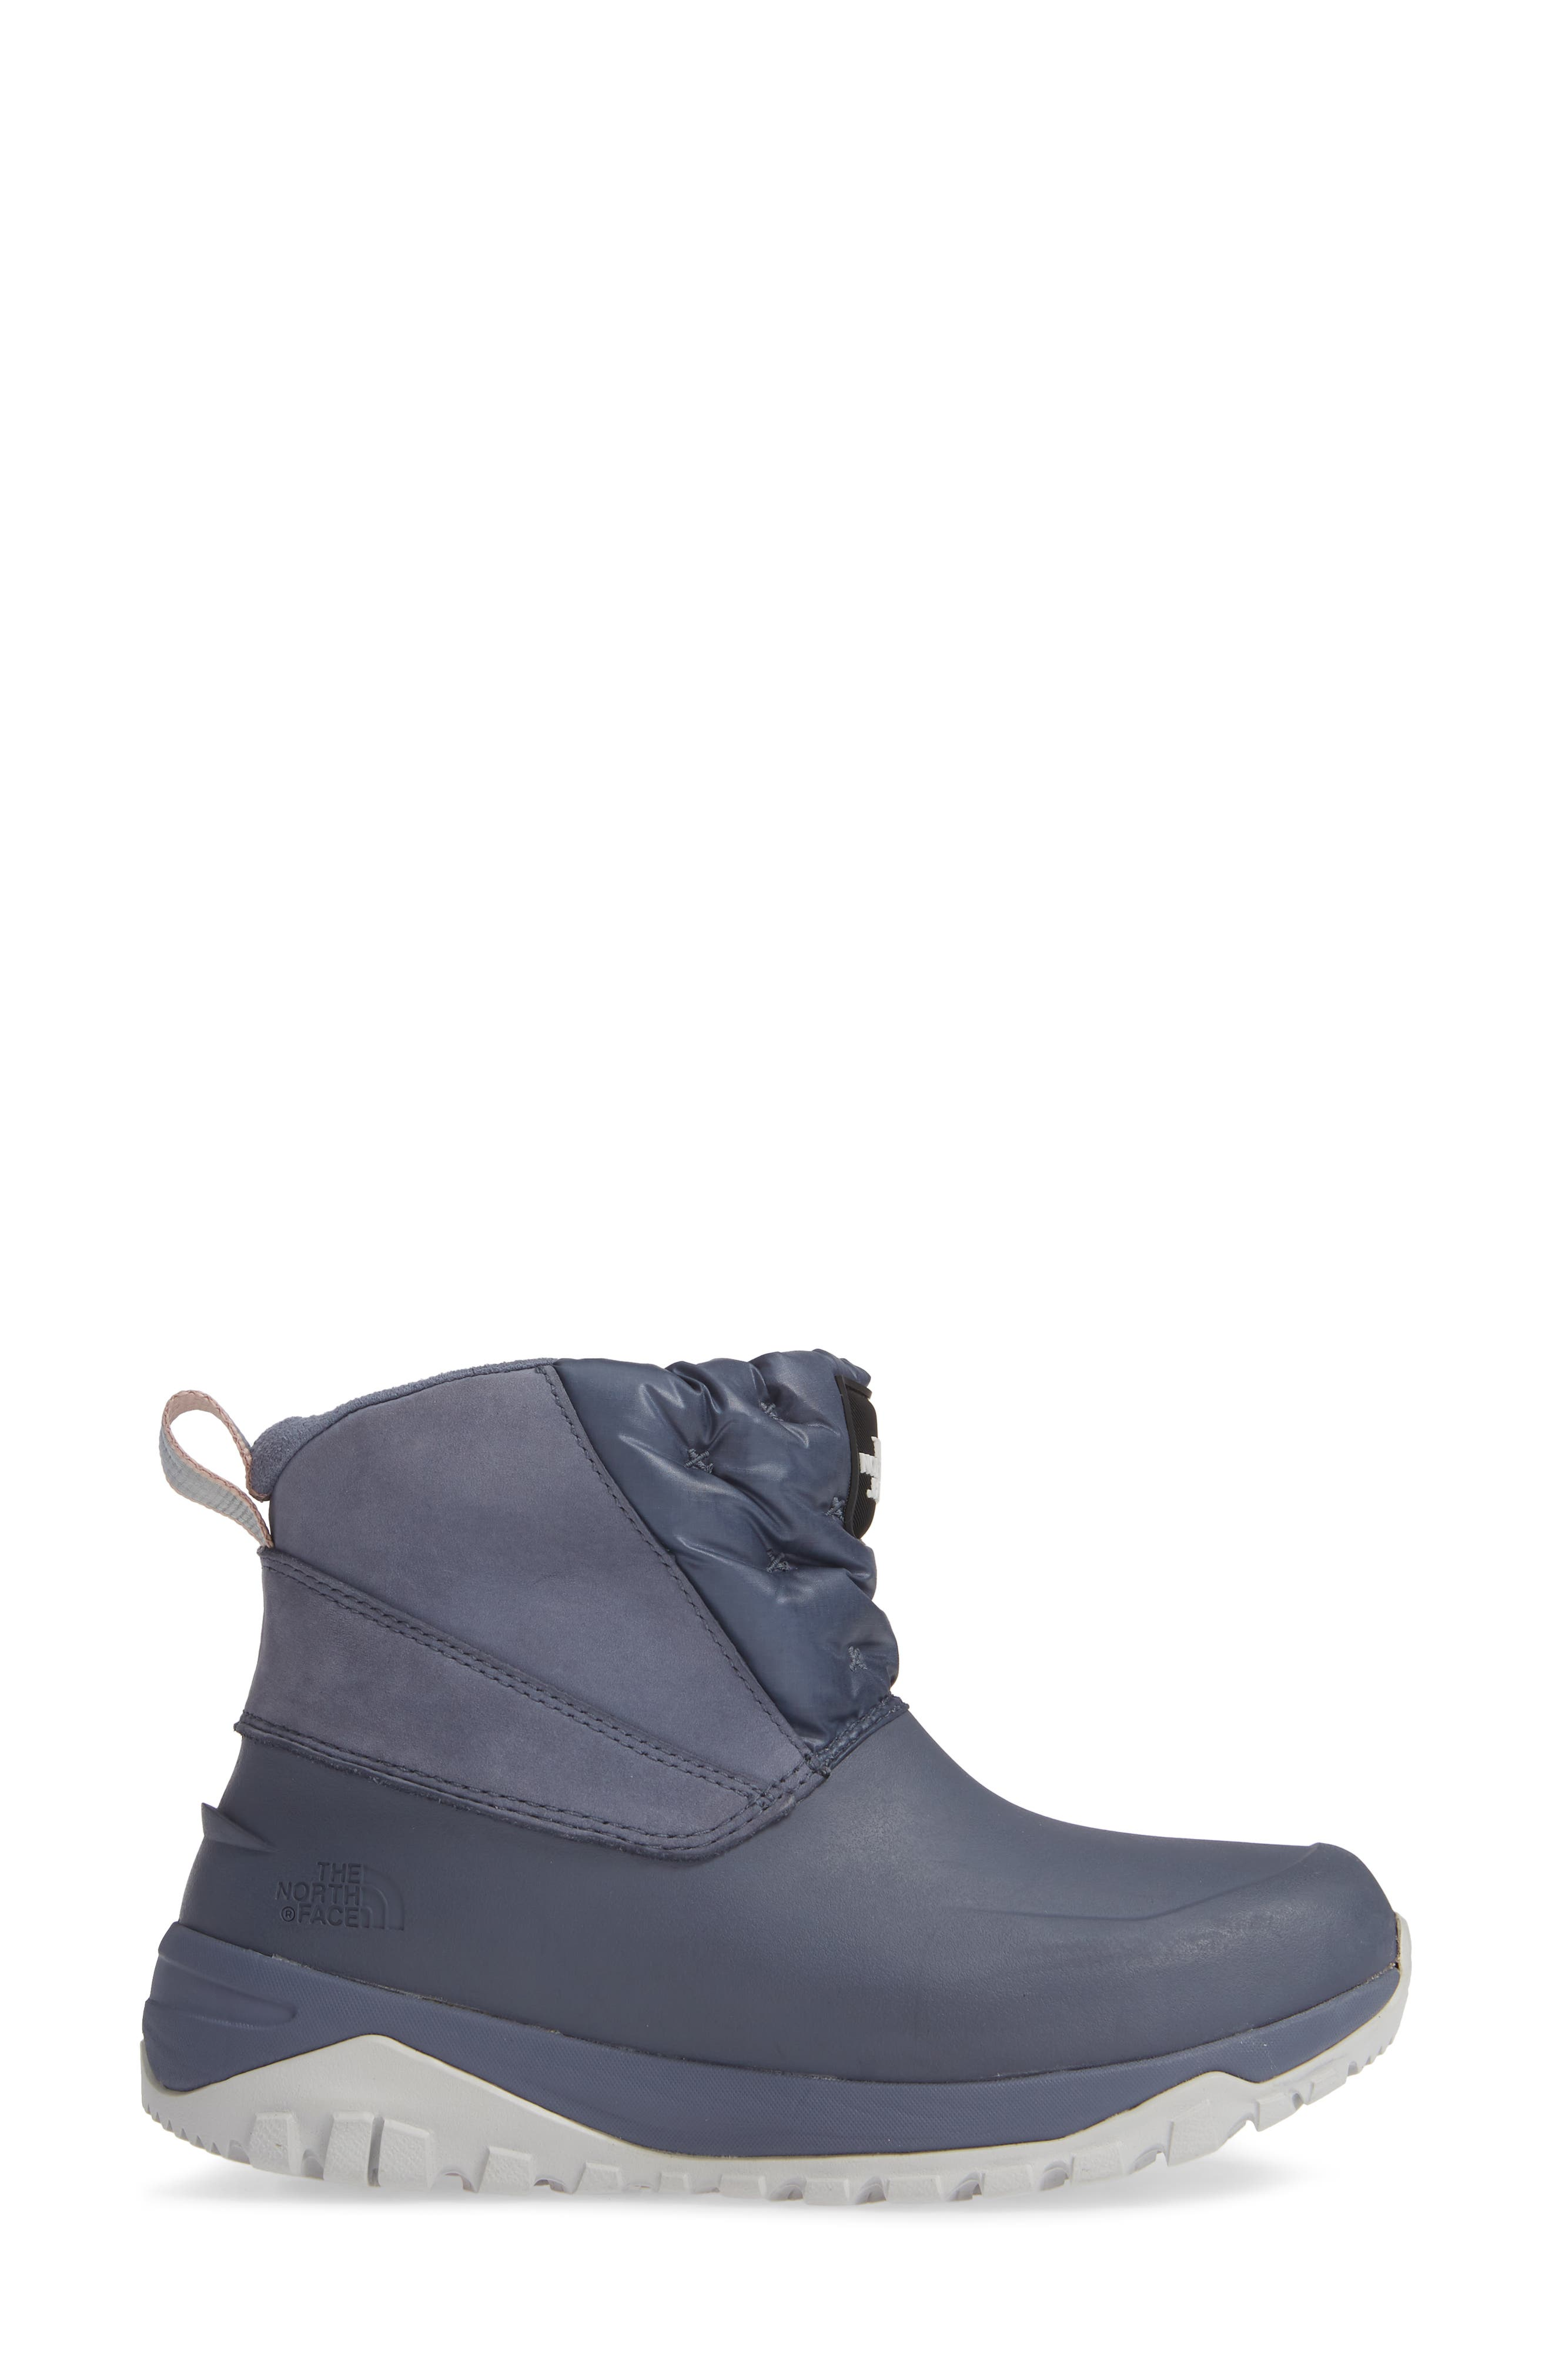 Yukiona Waterproof Ankle Boot,                             Alternate thumbnail 3, color,                             GRISAILLE GREY/ TIN GREY